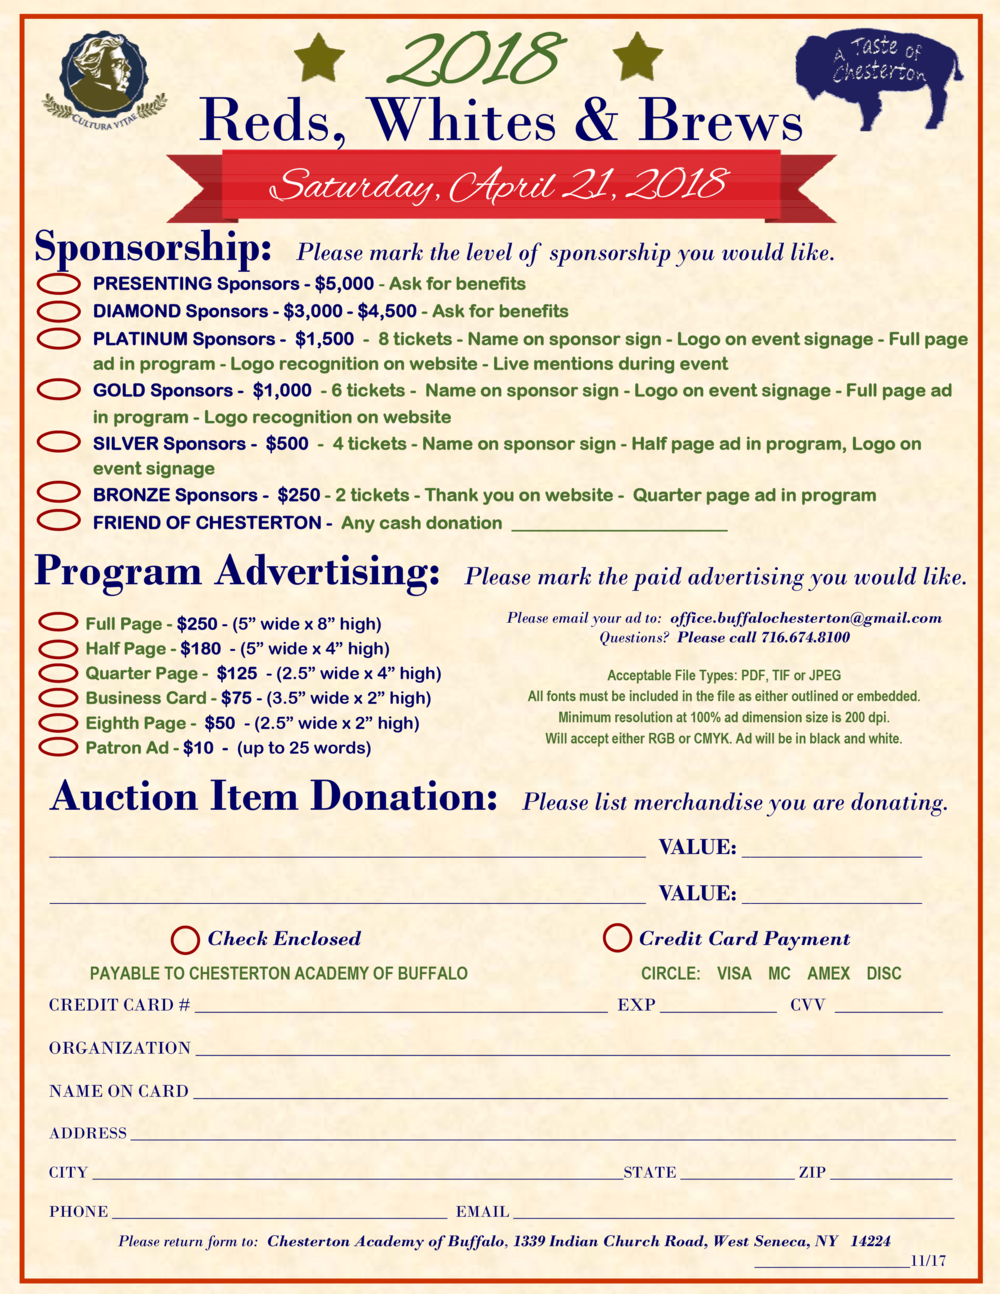 taste-of-chesterton-sponsorship-auction-form.png